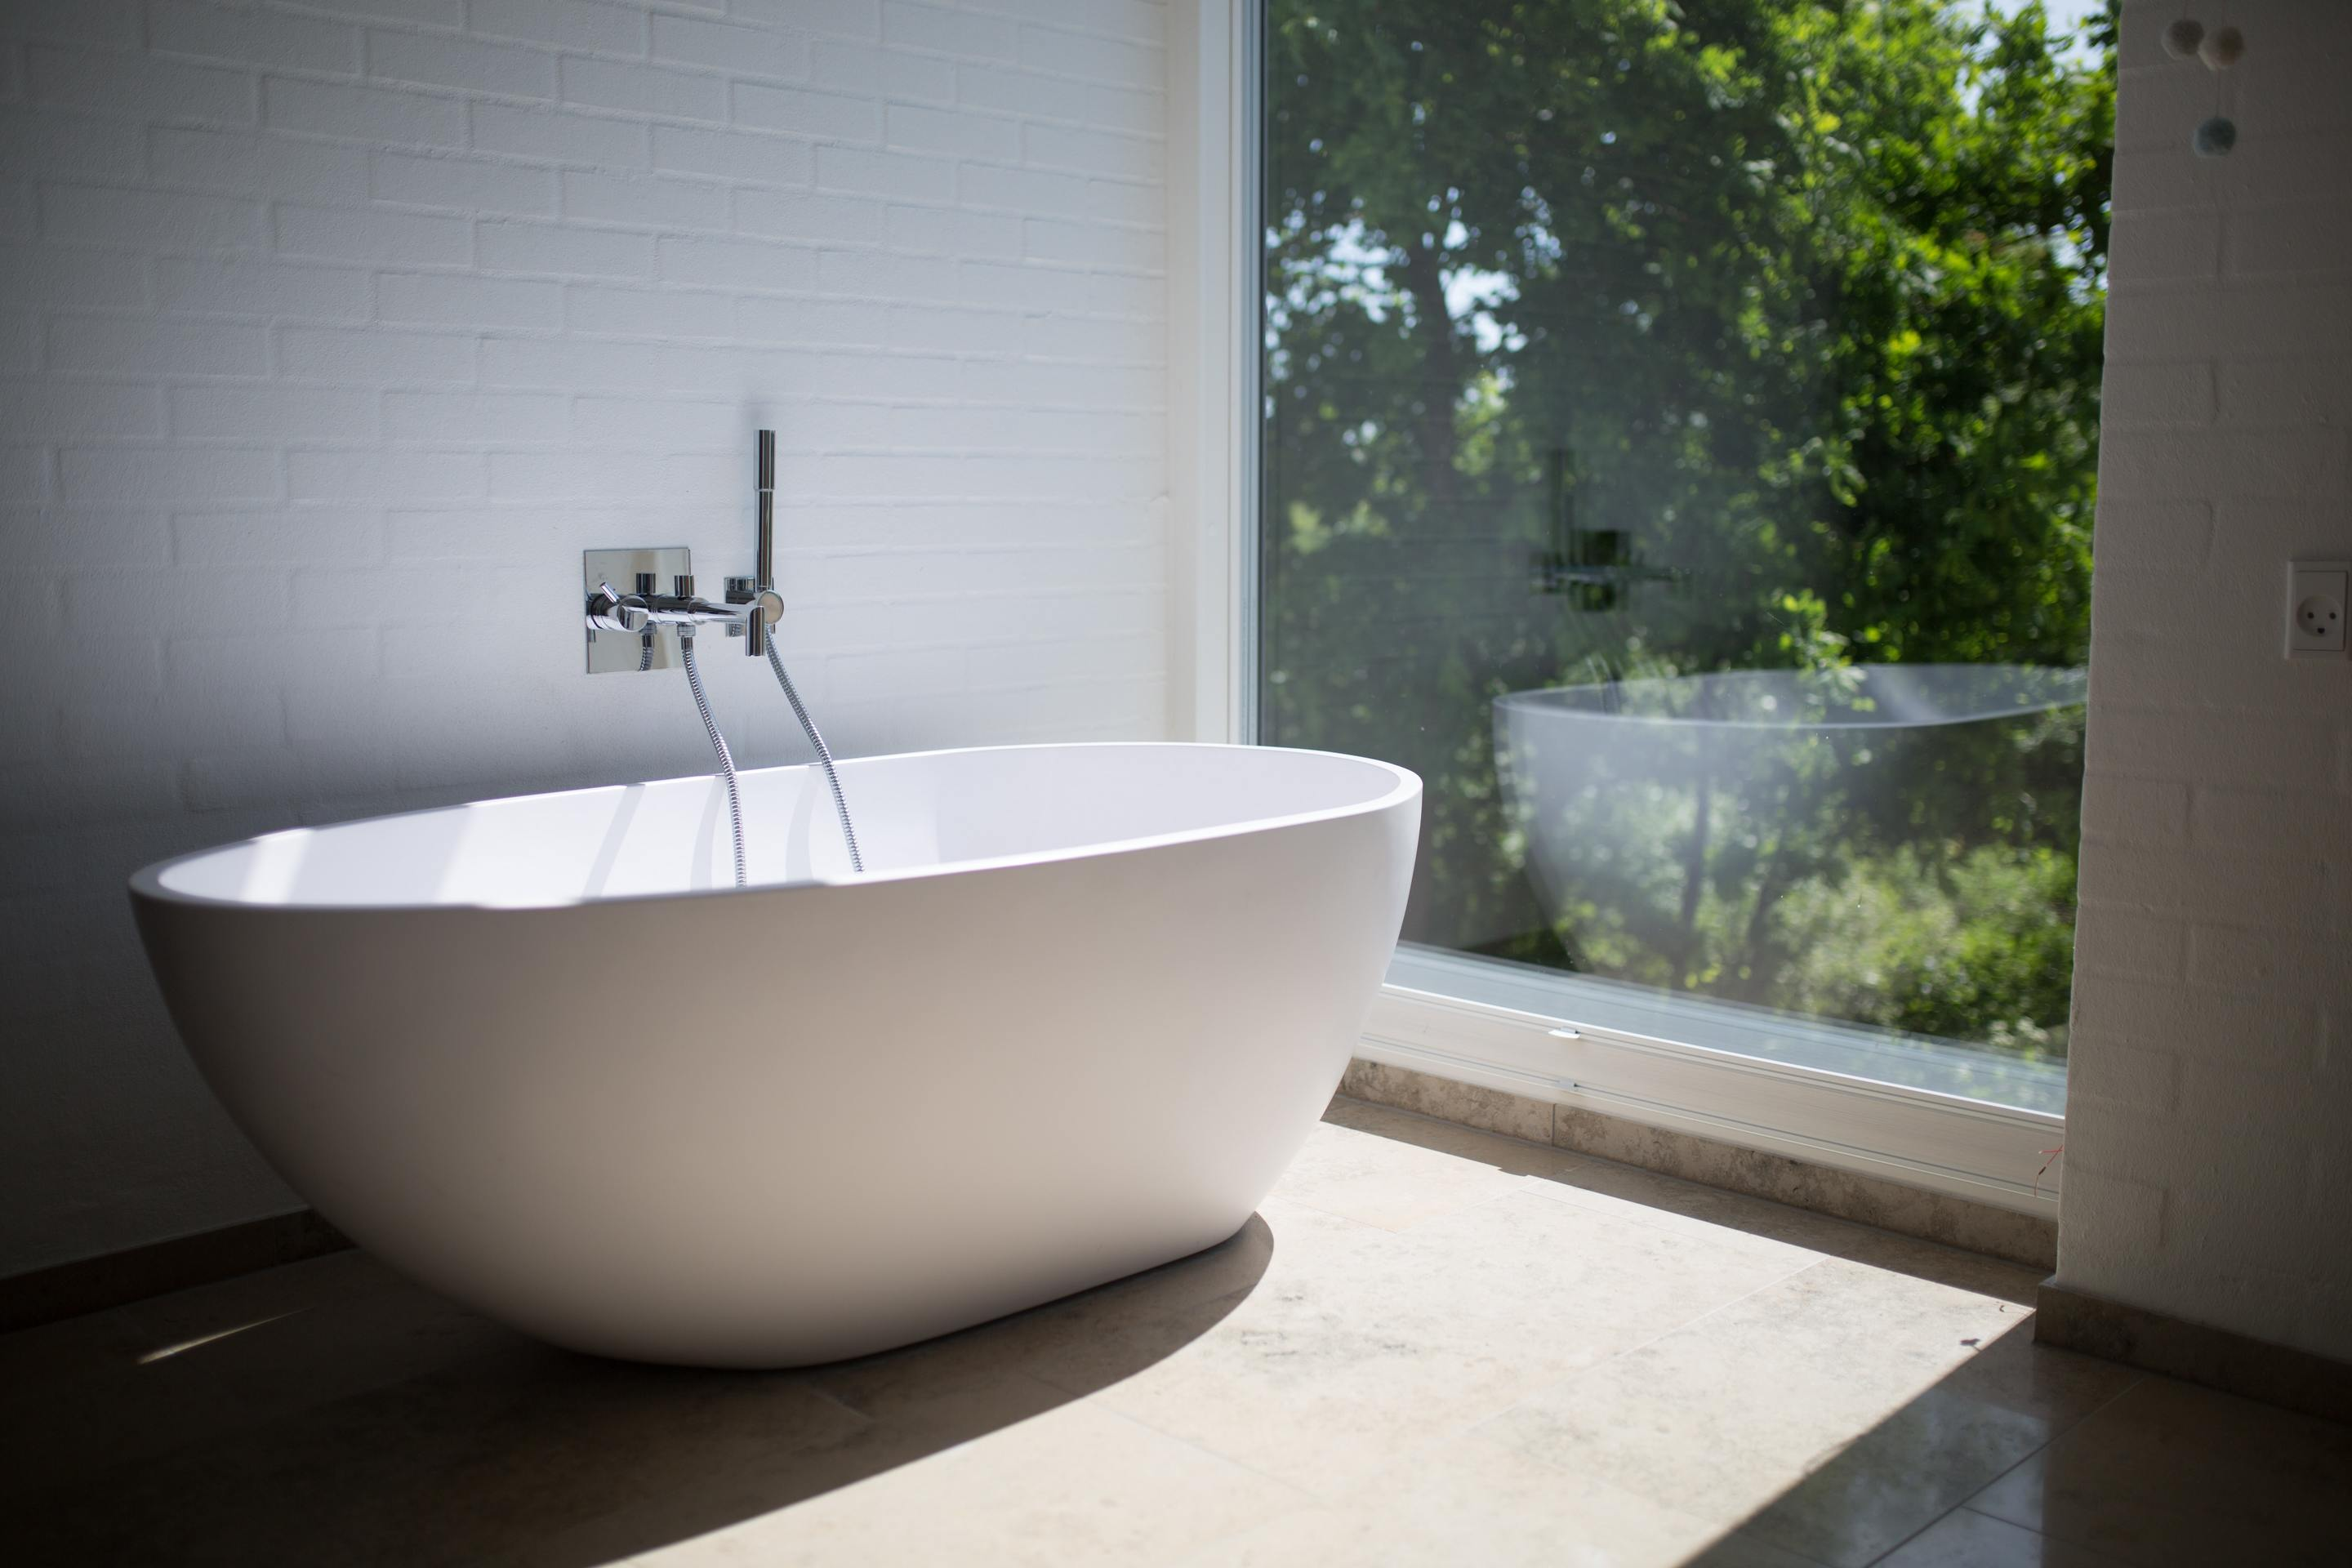 An image of a curved edge. free-standing, white bath with silver taps, in a bathroom, next to a large window with greenery outside.